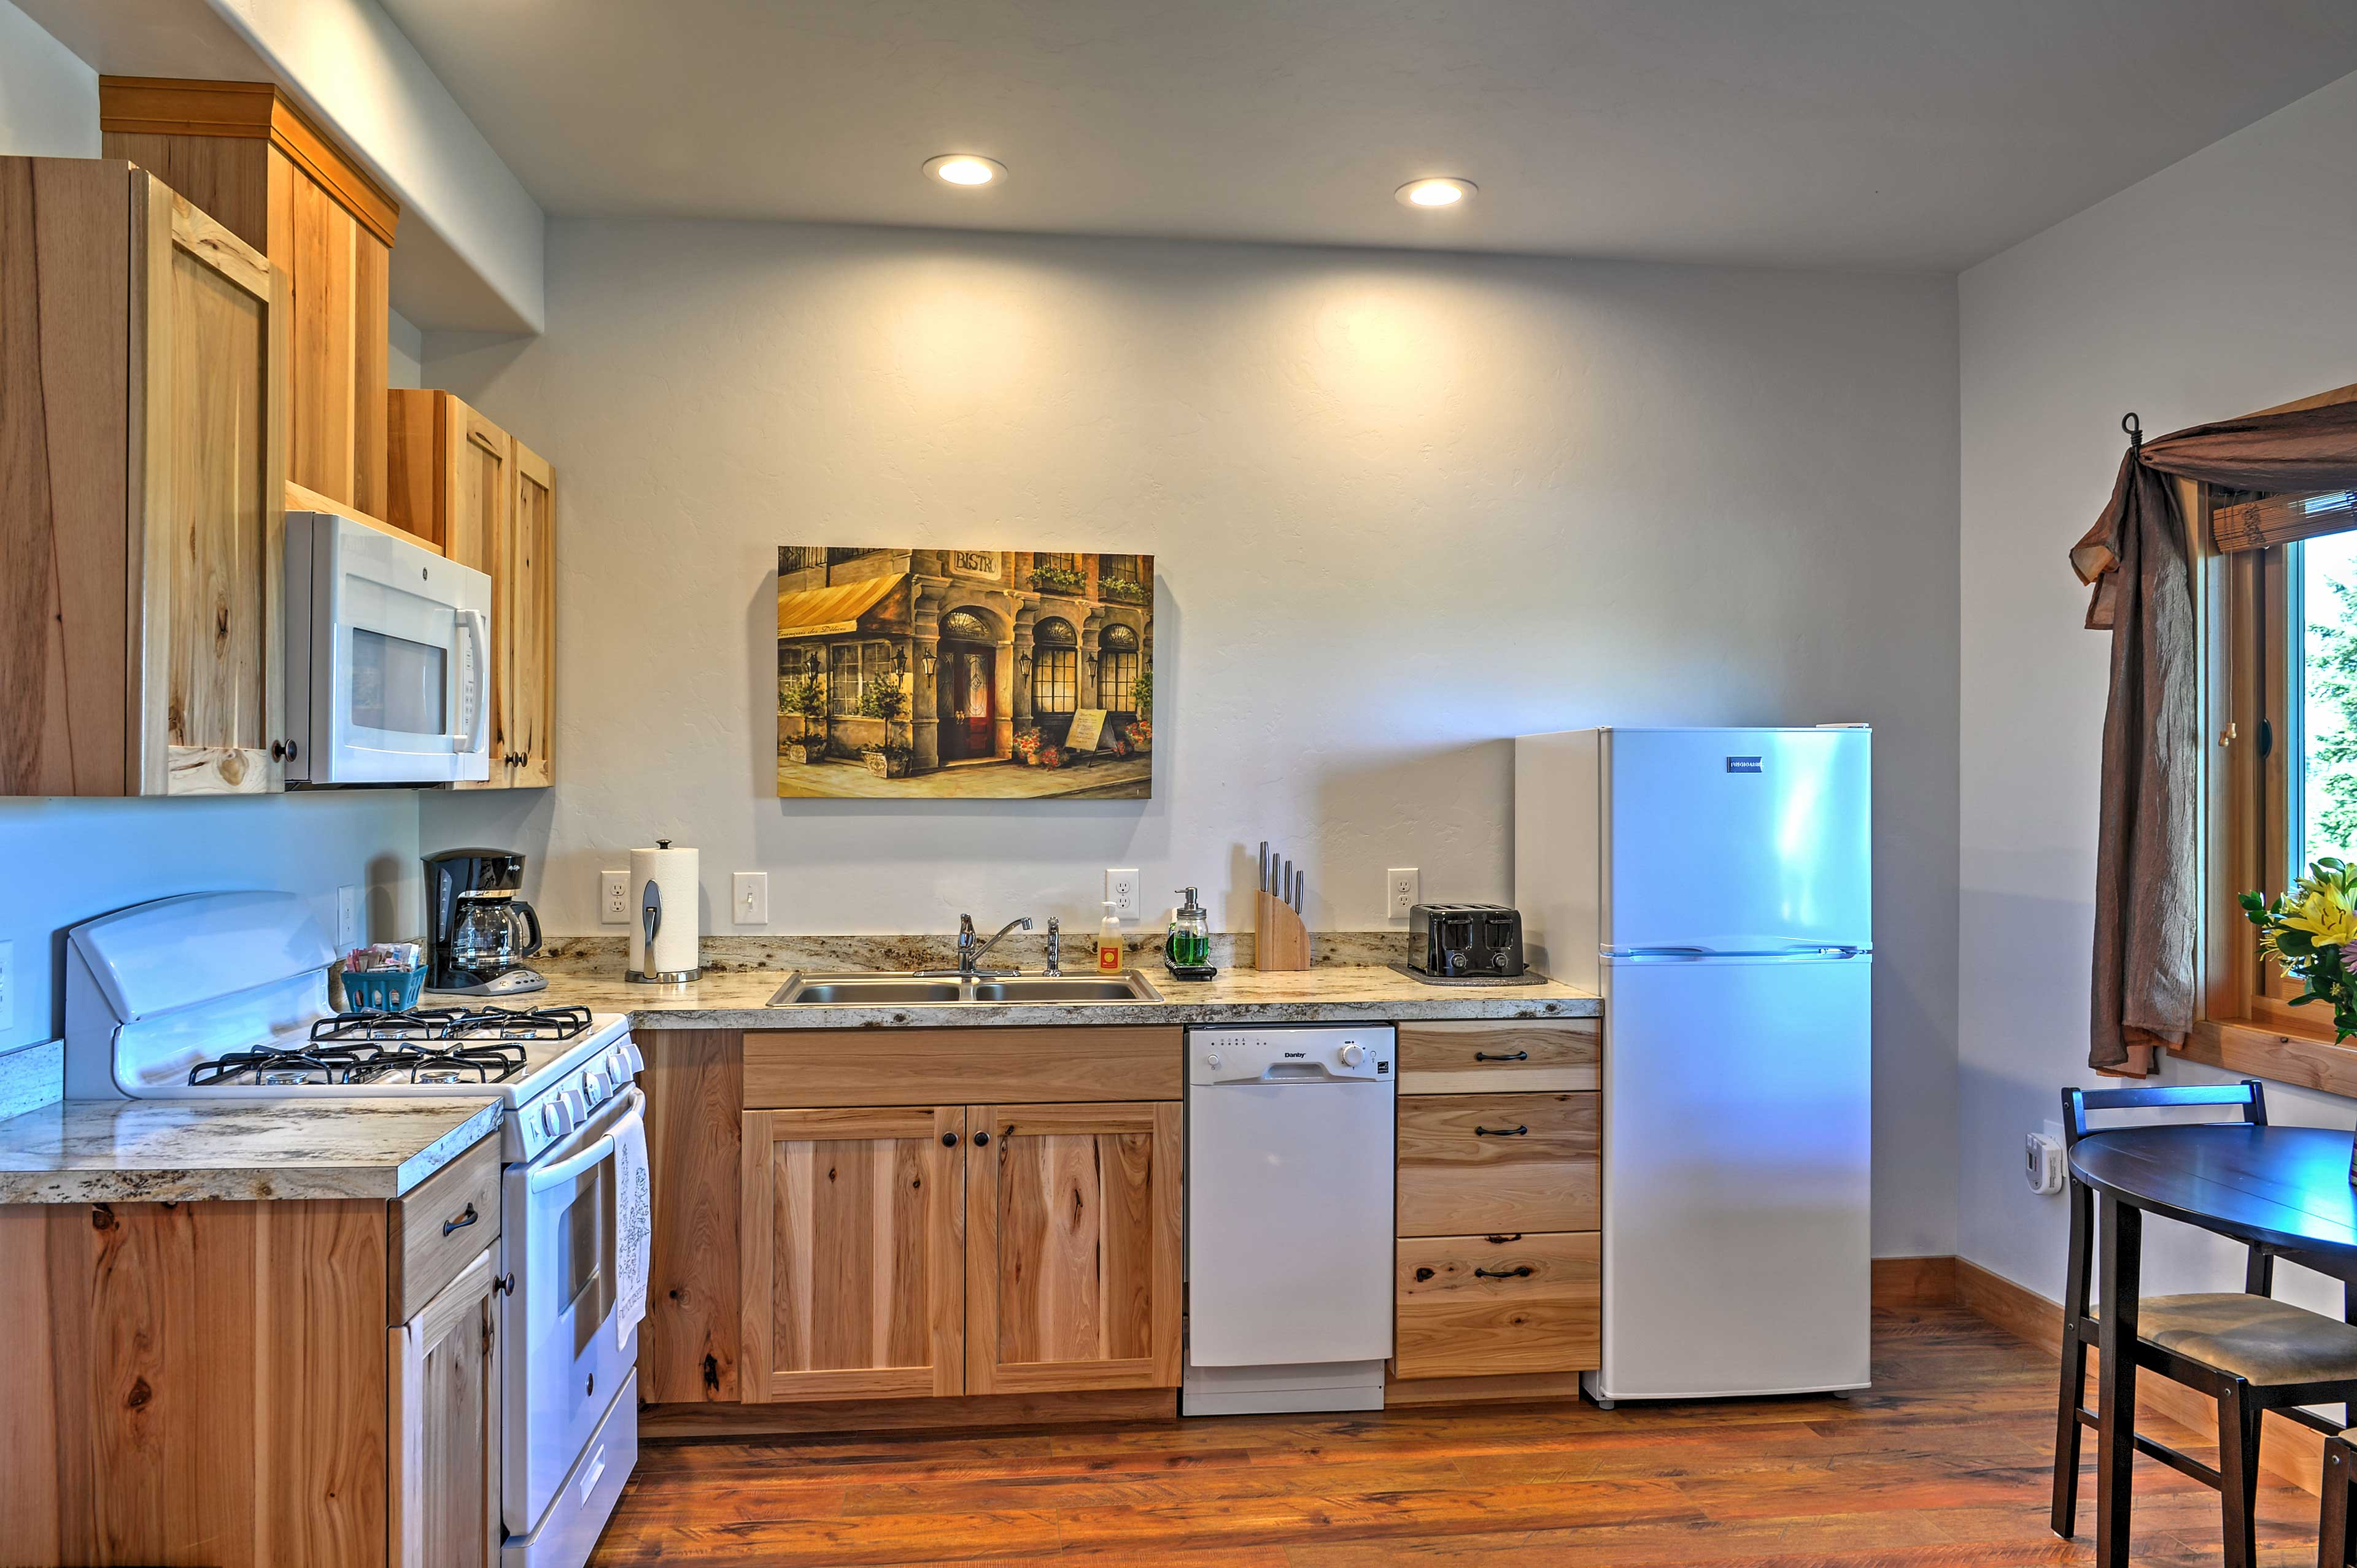 The kitchen features a 2-person dining table.